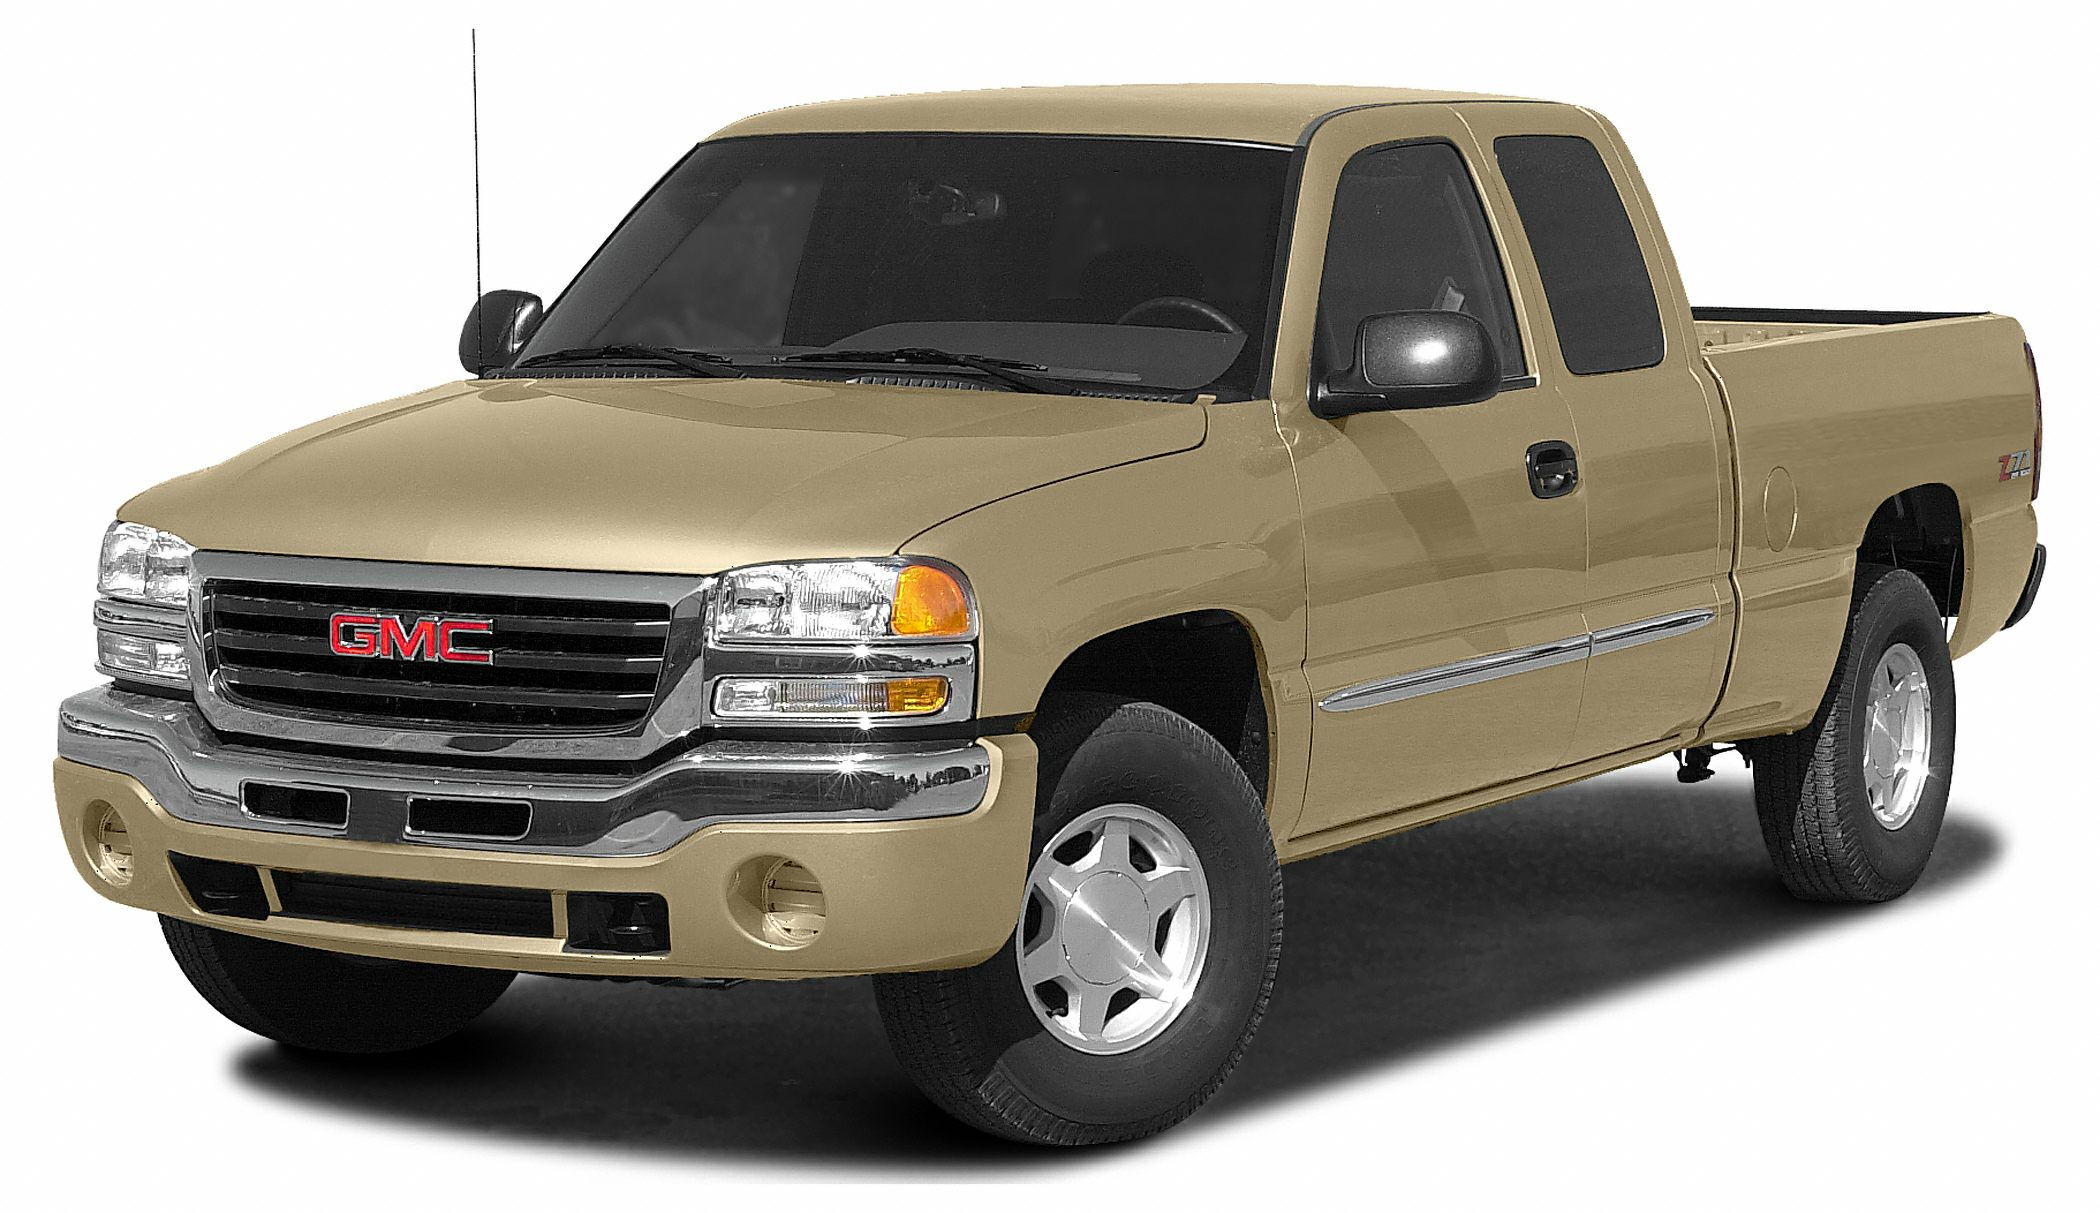 2003 GMC Sierra 1500 SLE Vortec 53L V8 SFI 4-Speed Automatic with Overdrive Miles 133160Color